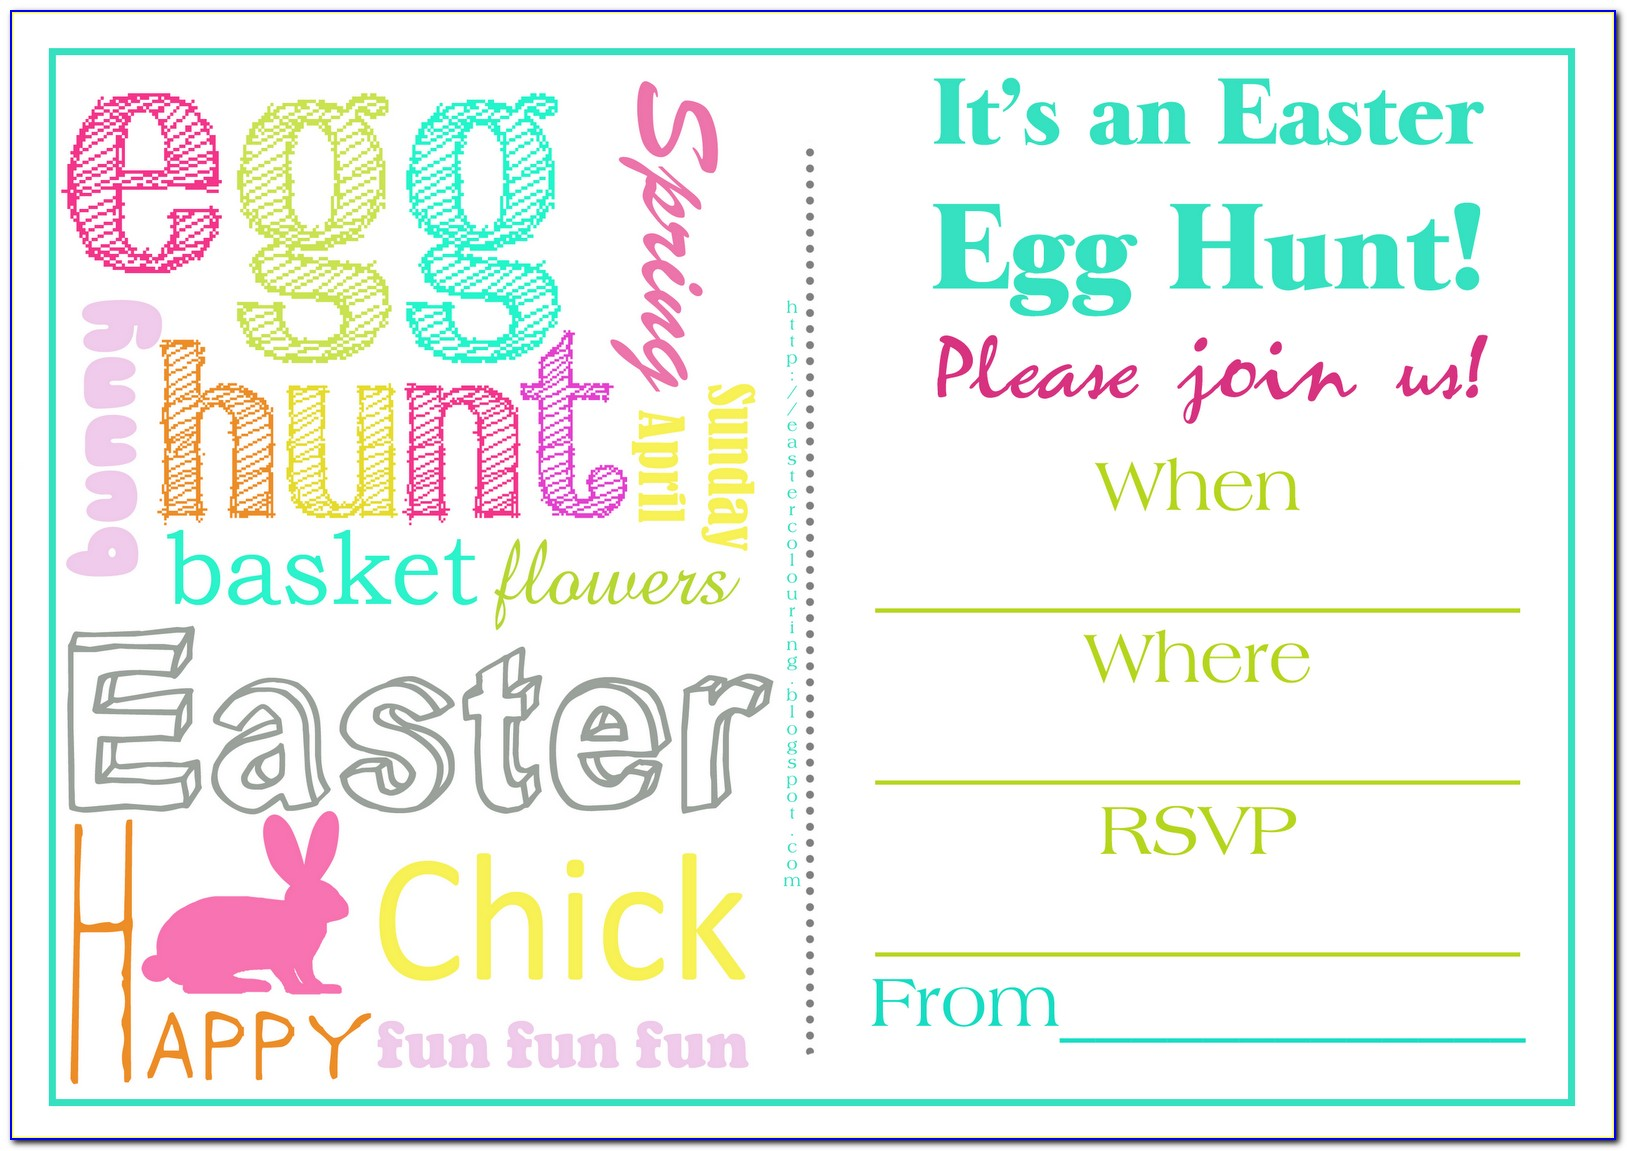 Free Printable Easter Egg Hunt Invitation Templates